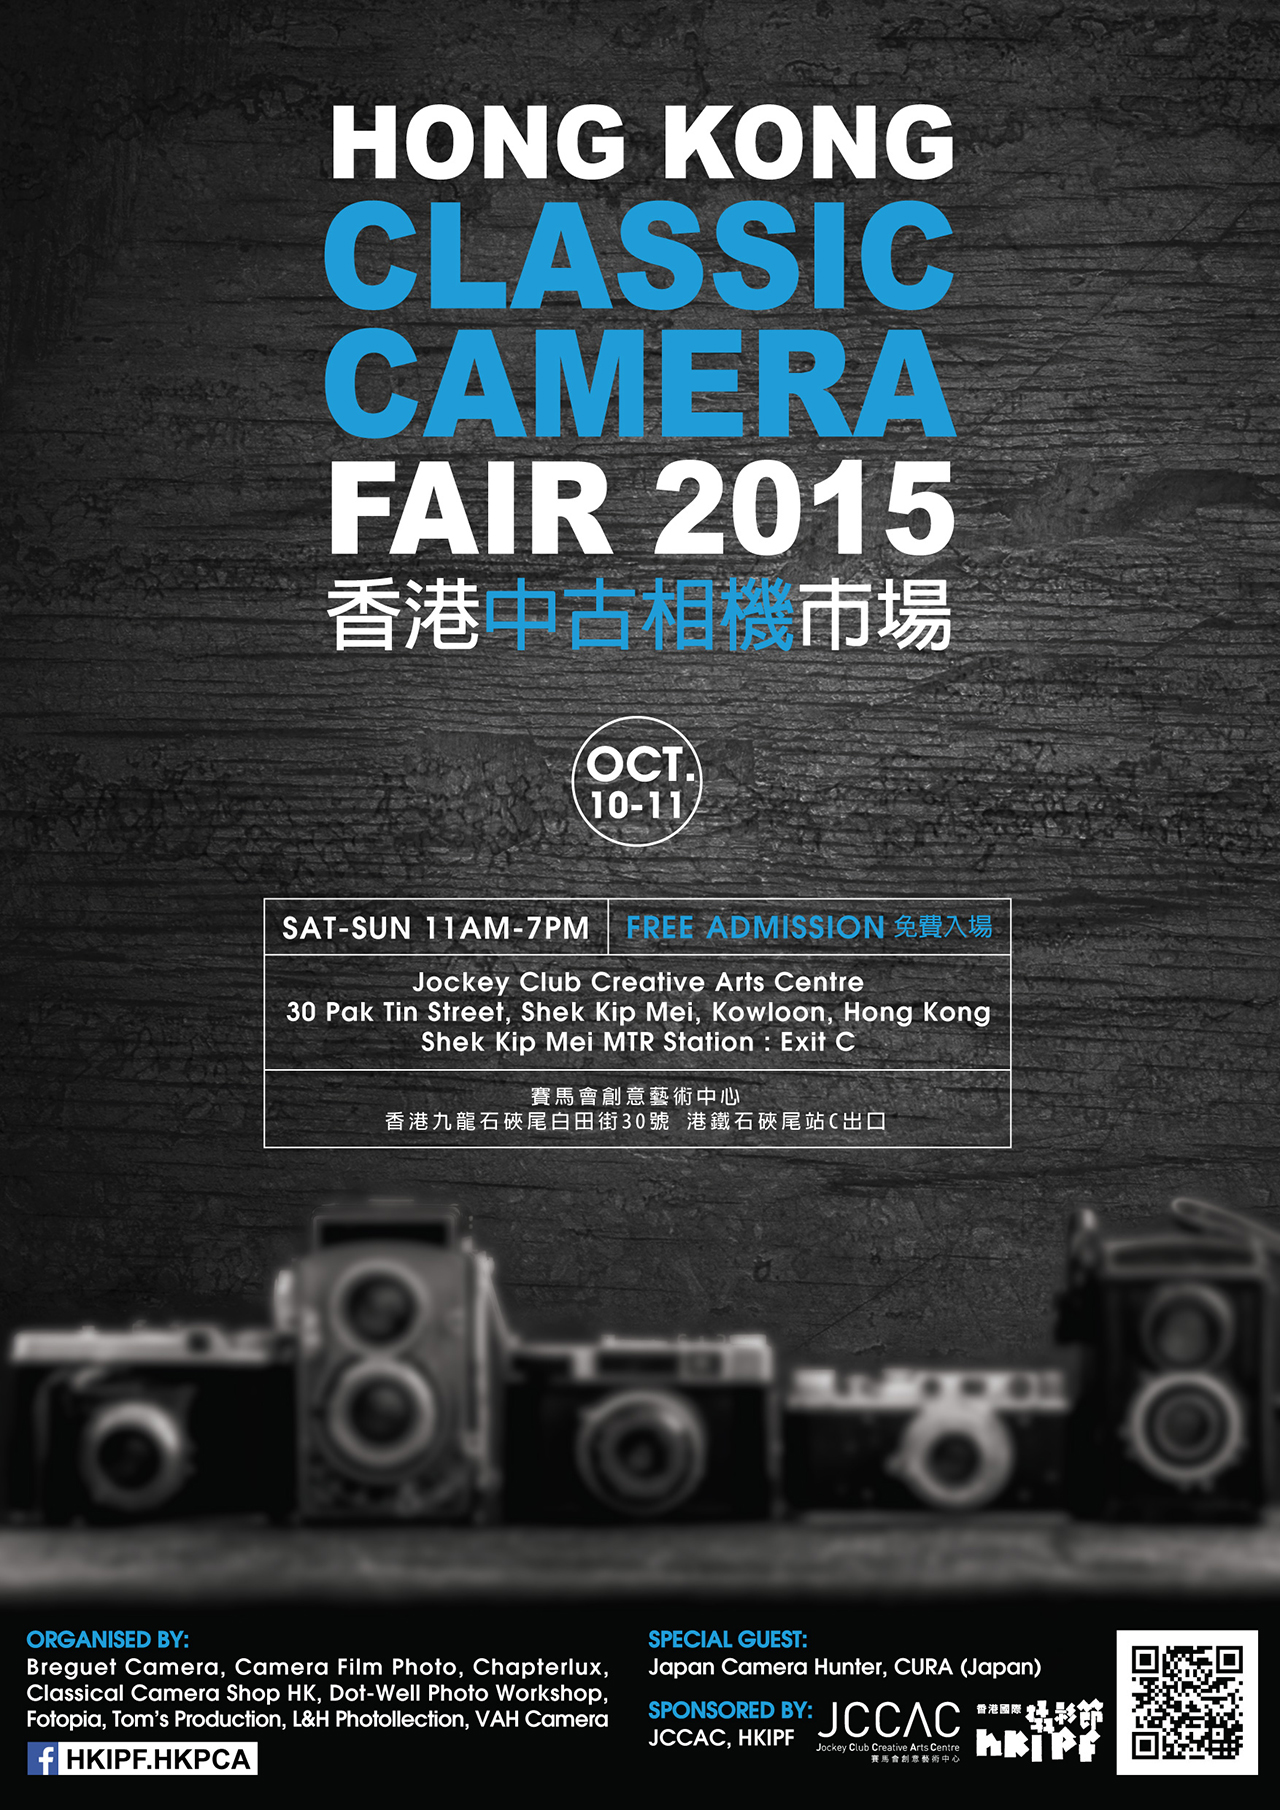 Hong Kong Classic Camera Fair 2015